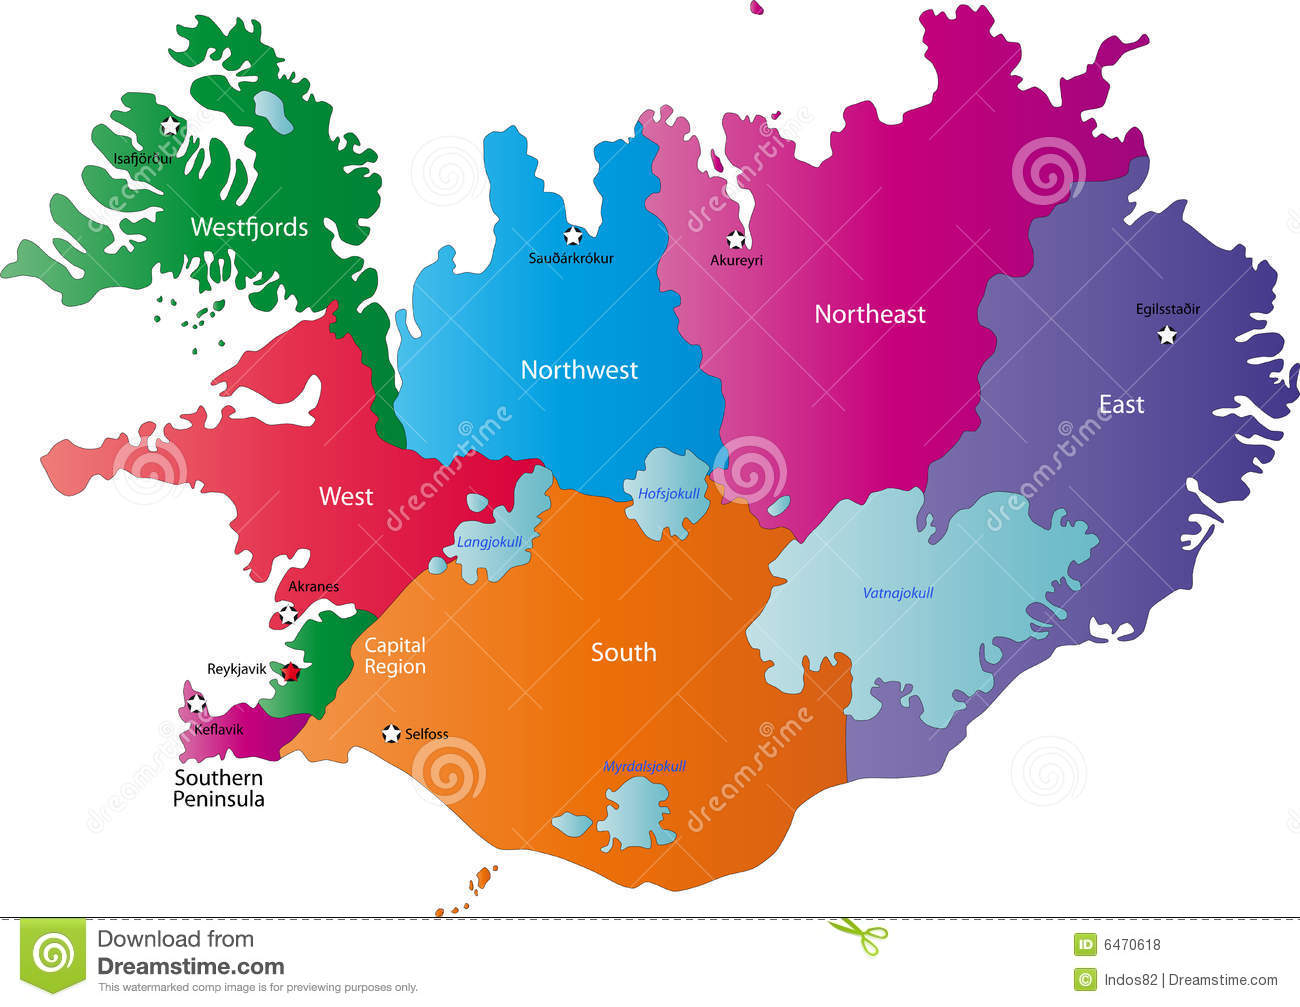 Iceland map designed in illustration with provinces colored in bright ...